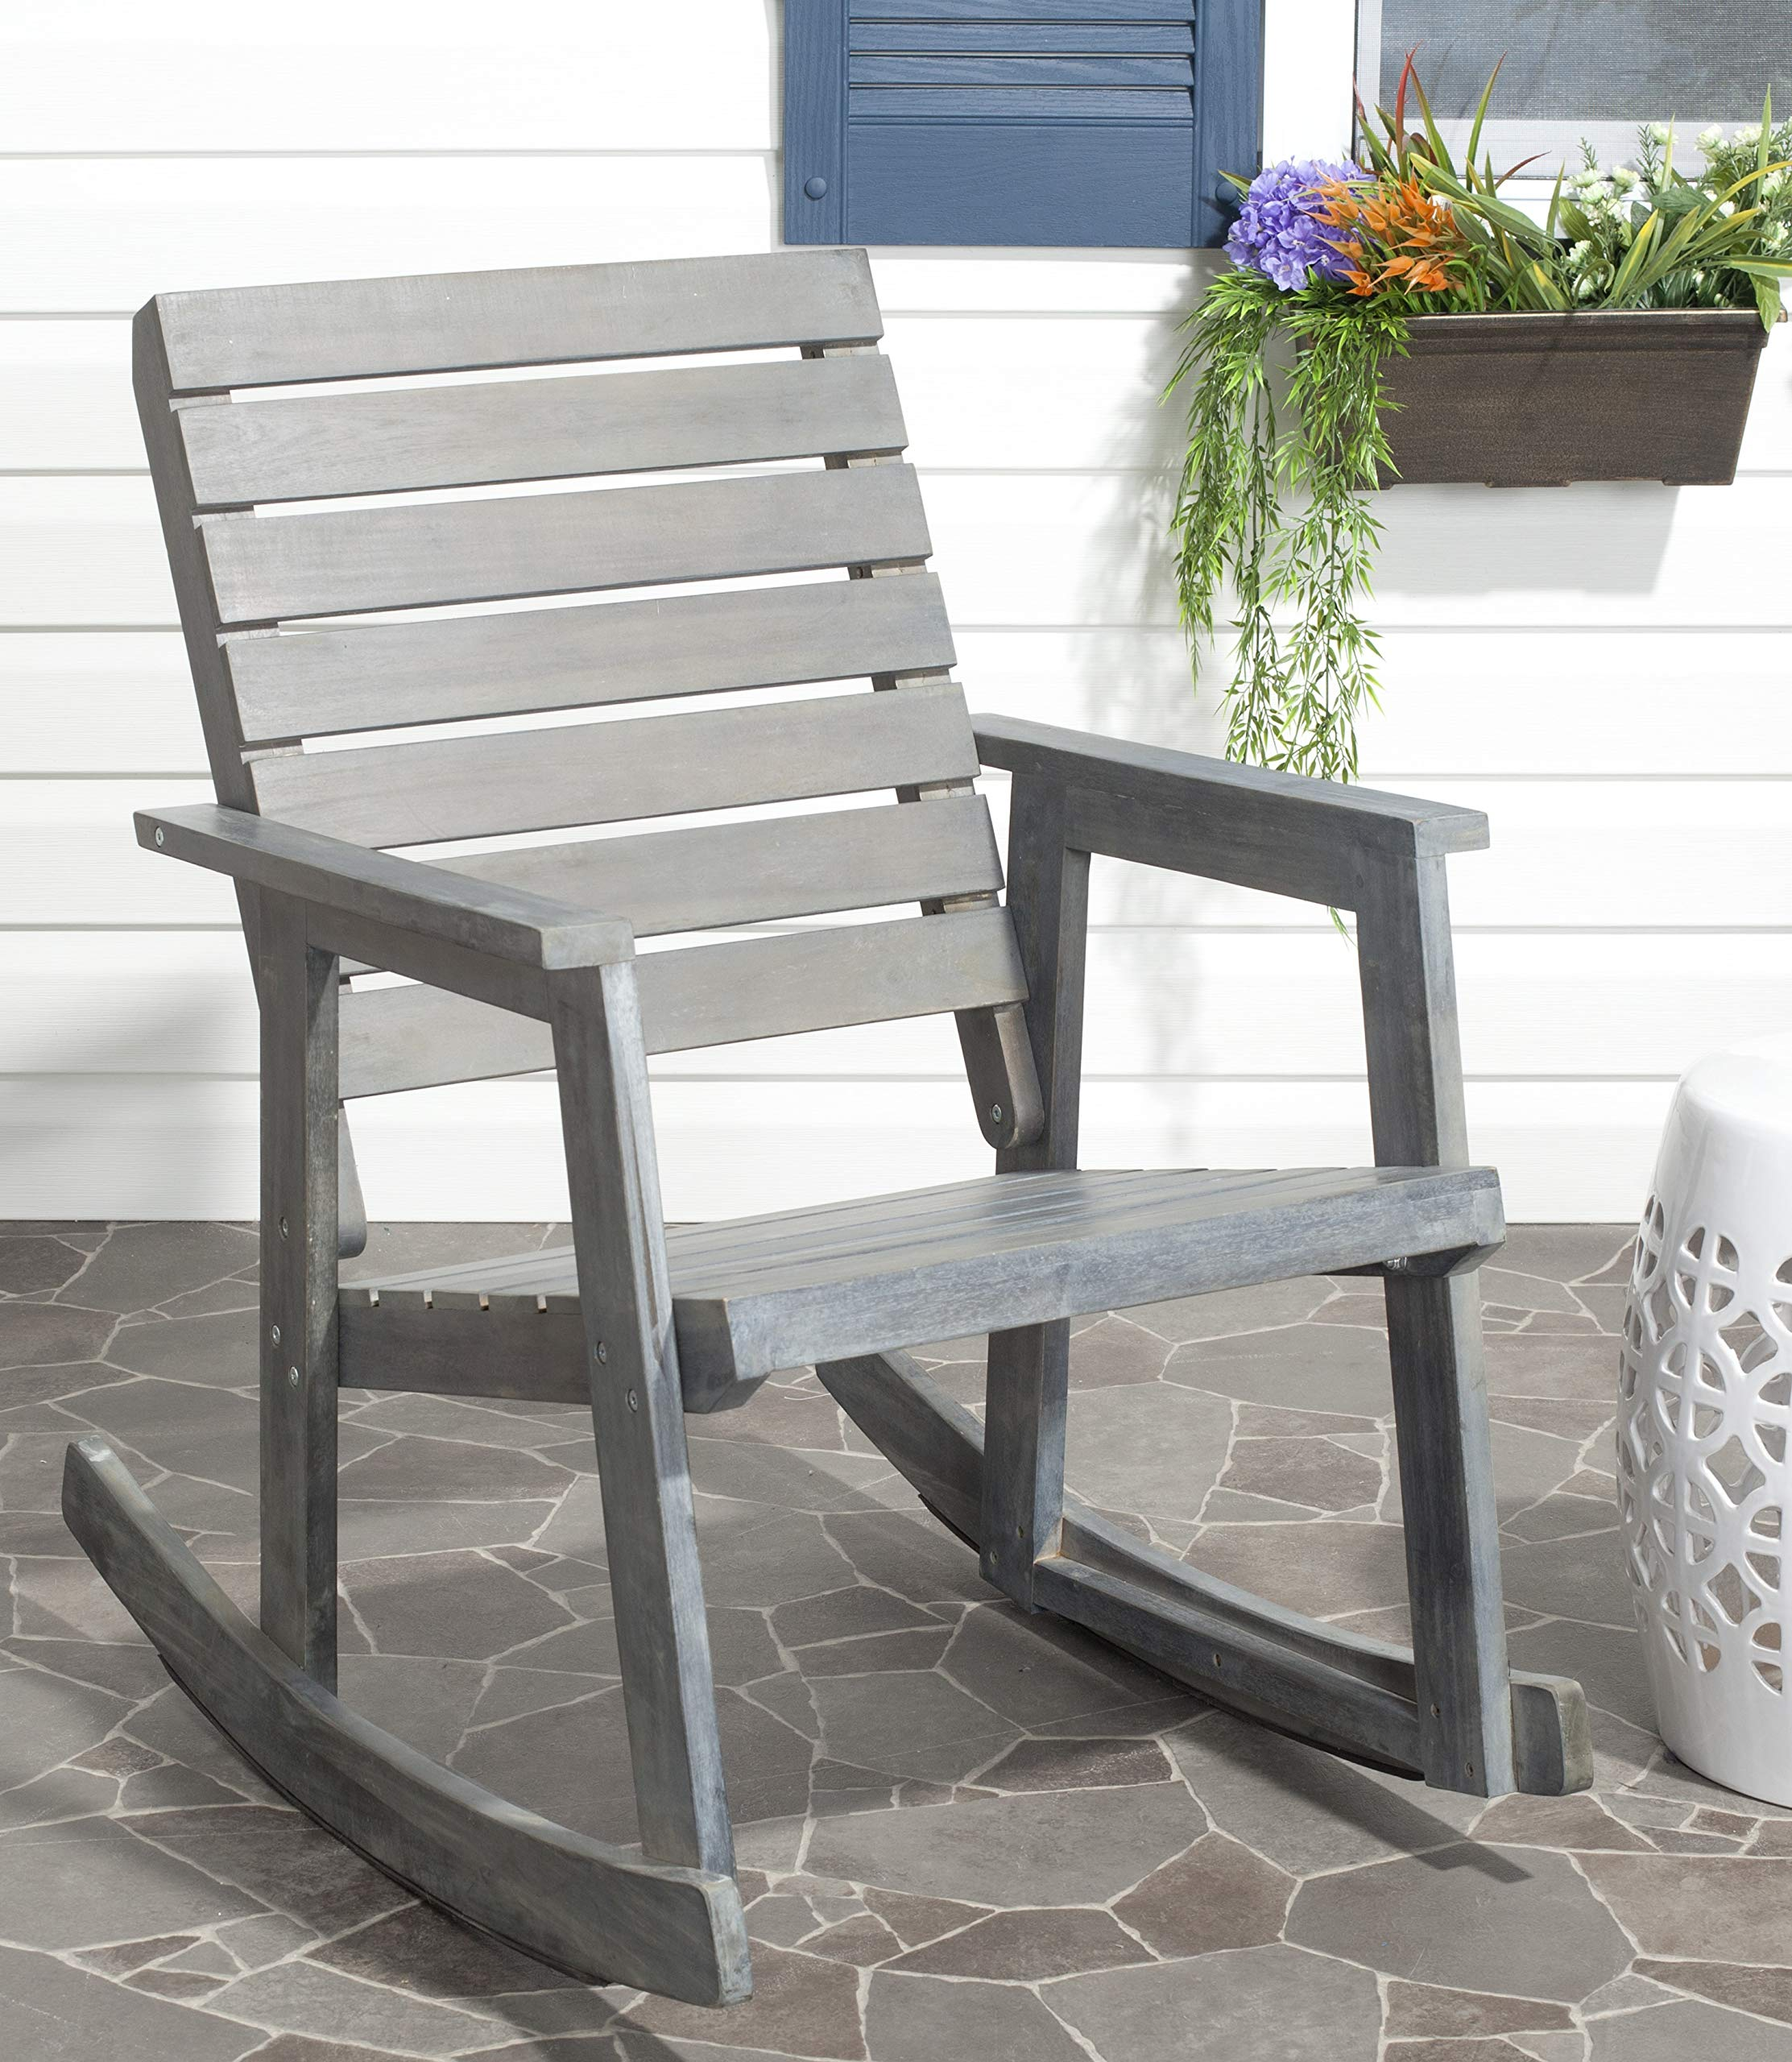 Safavieh Outdoor Collection Alexei Ash Grey Rocking Chair, White